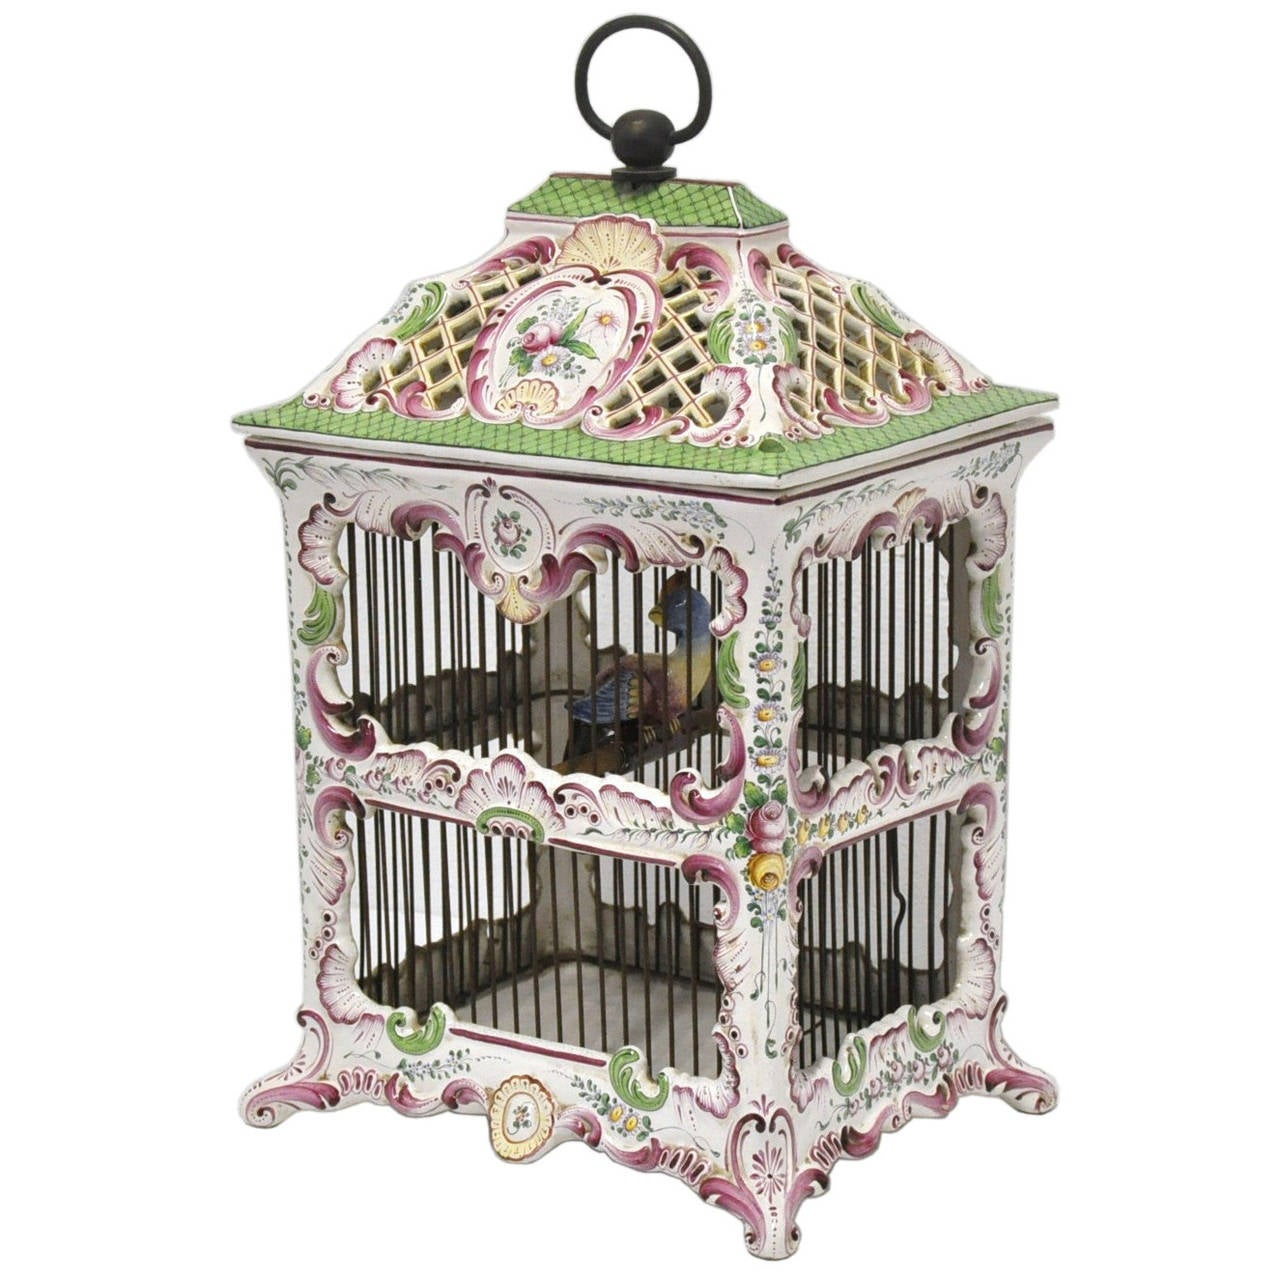 lights light children led blue product s lamp design hand birdcage bird childrens dimmable held touch night kalaixing